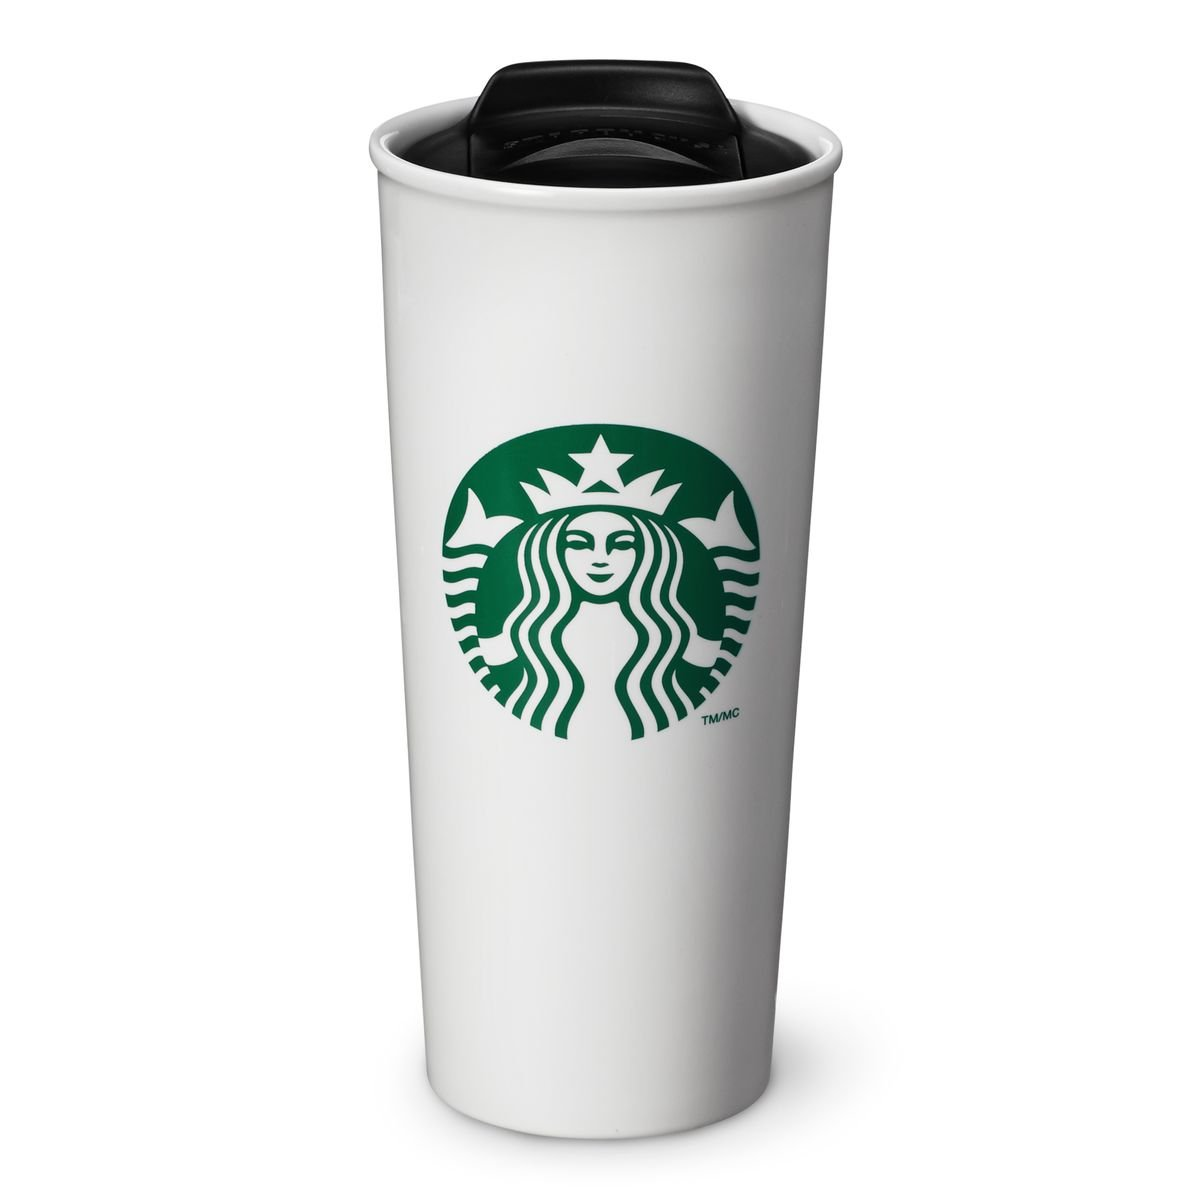 Starbucks Double Wall Ceramic Traveler Coffee Mug, 16 fl oz by Starbucks